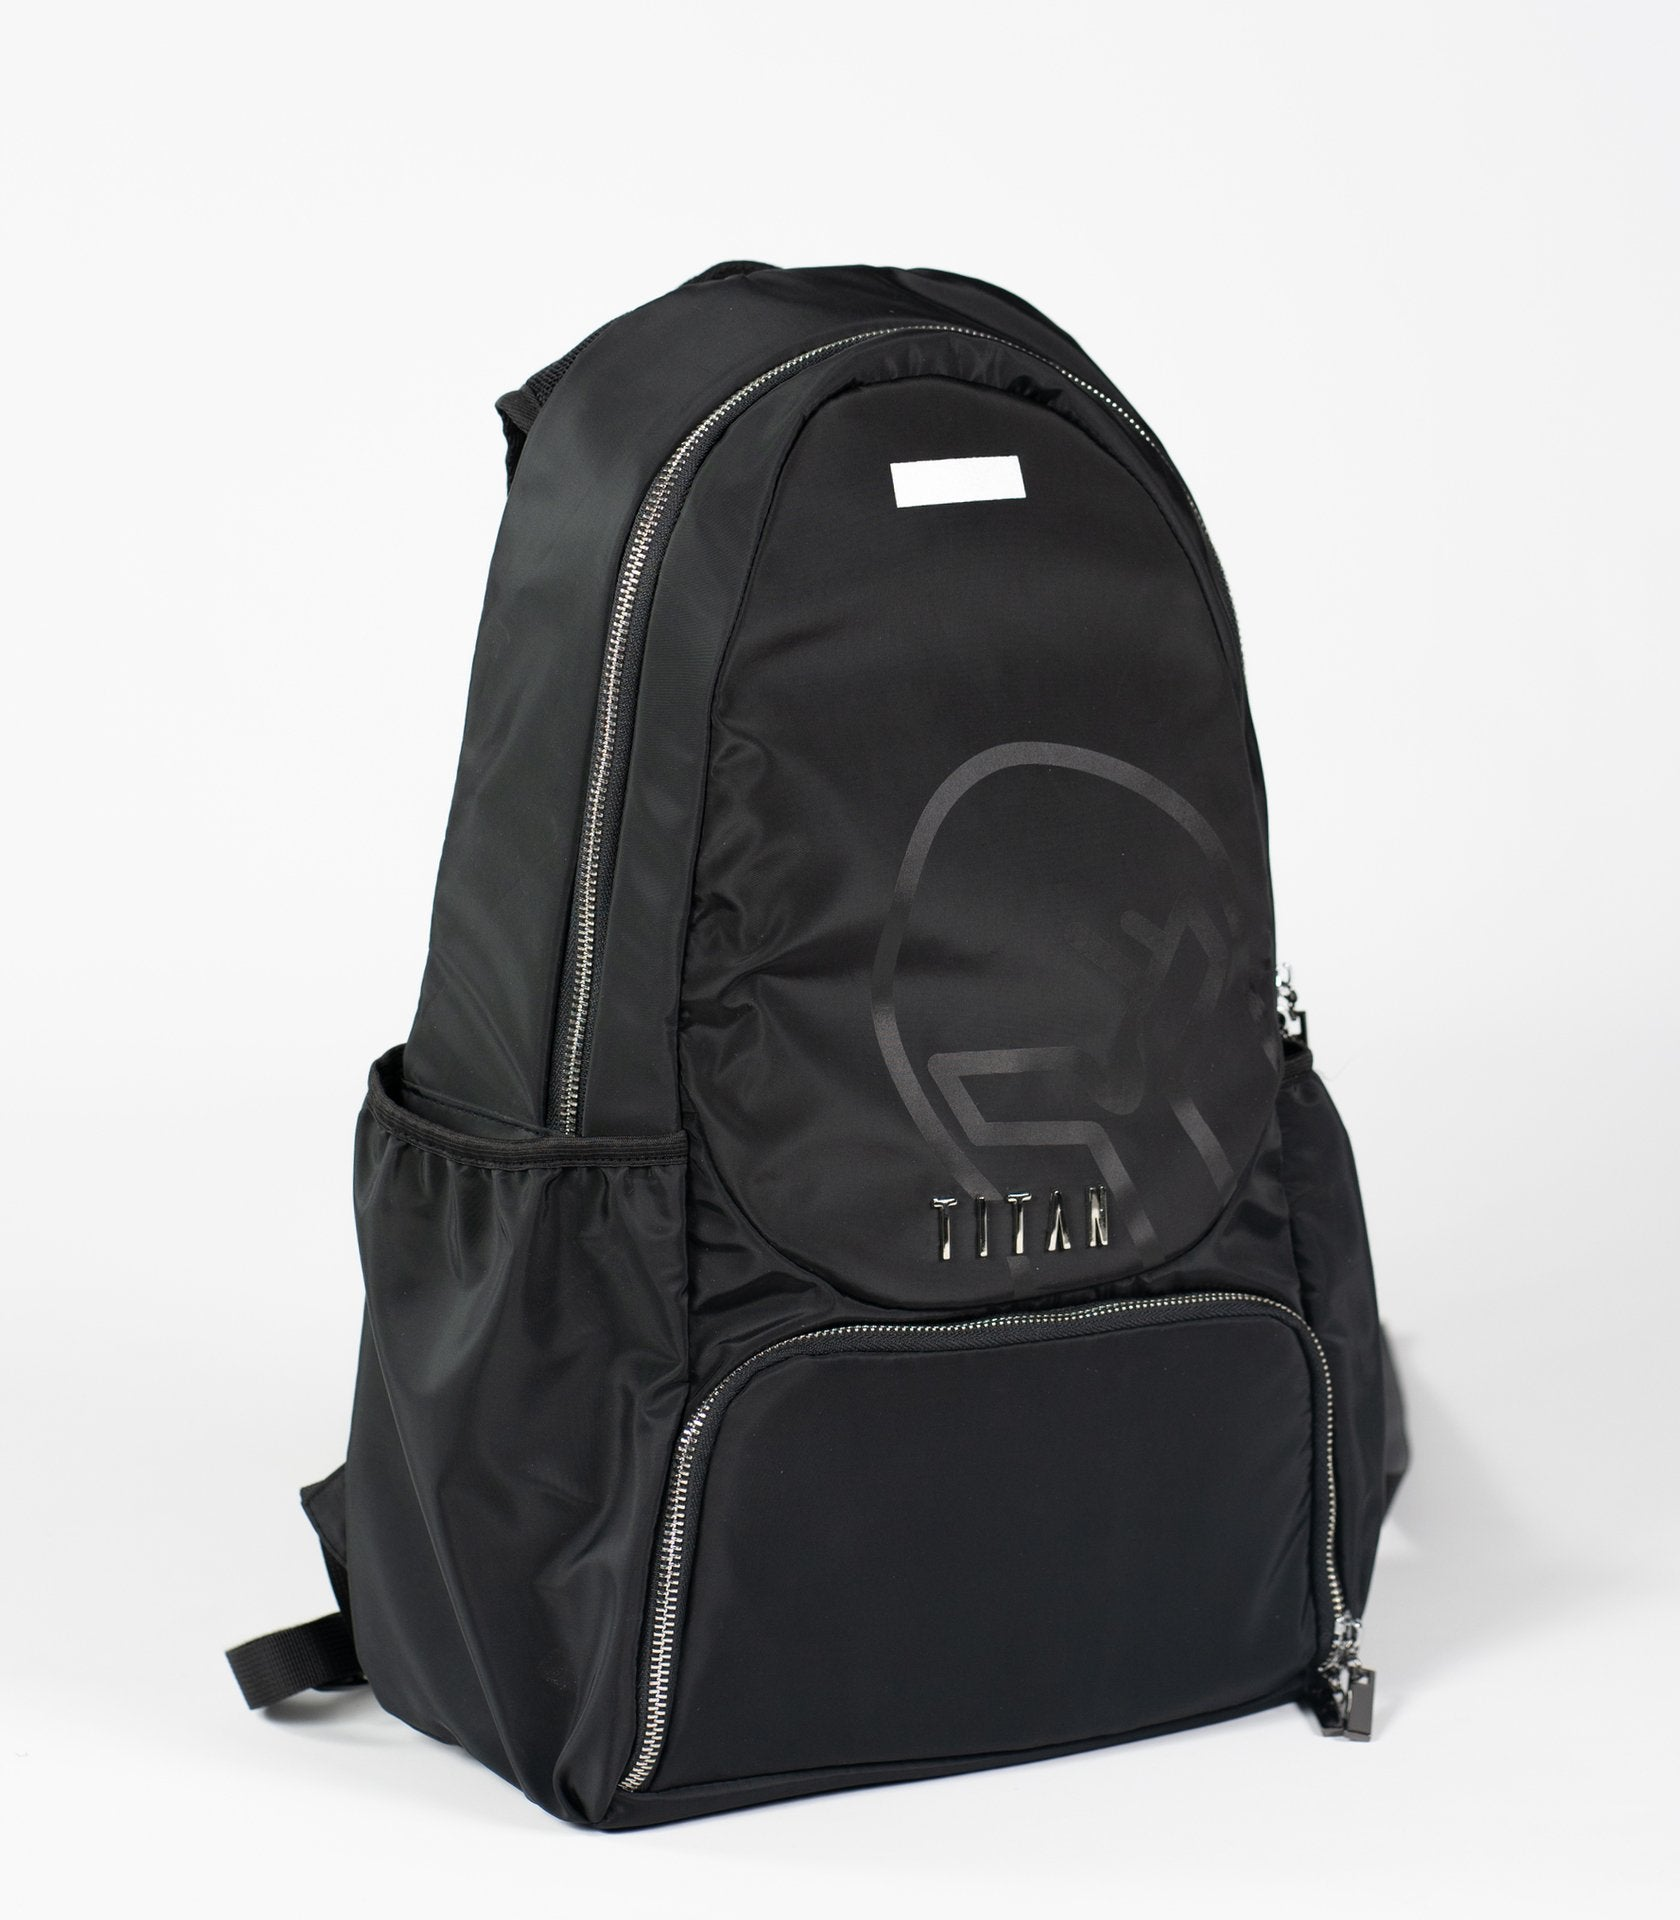 Nomad Backpack - Titan